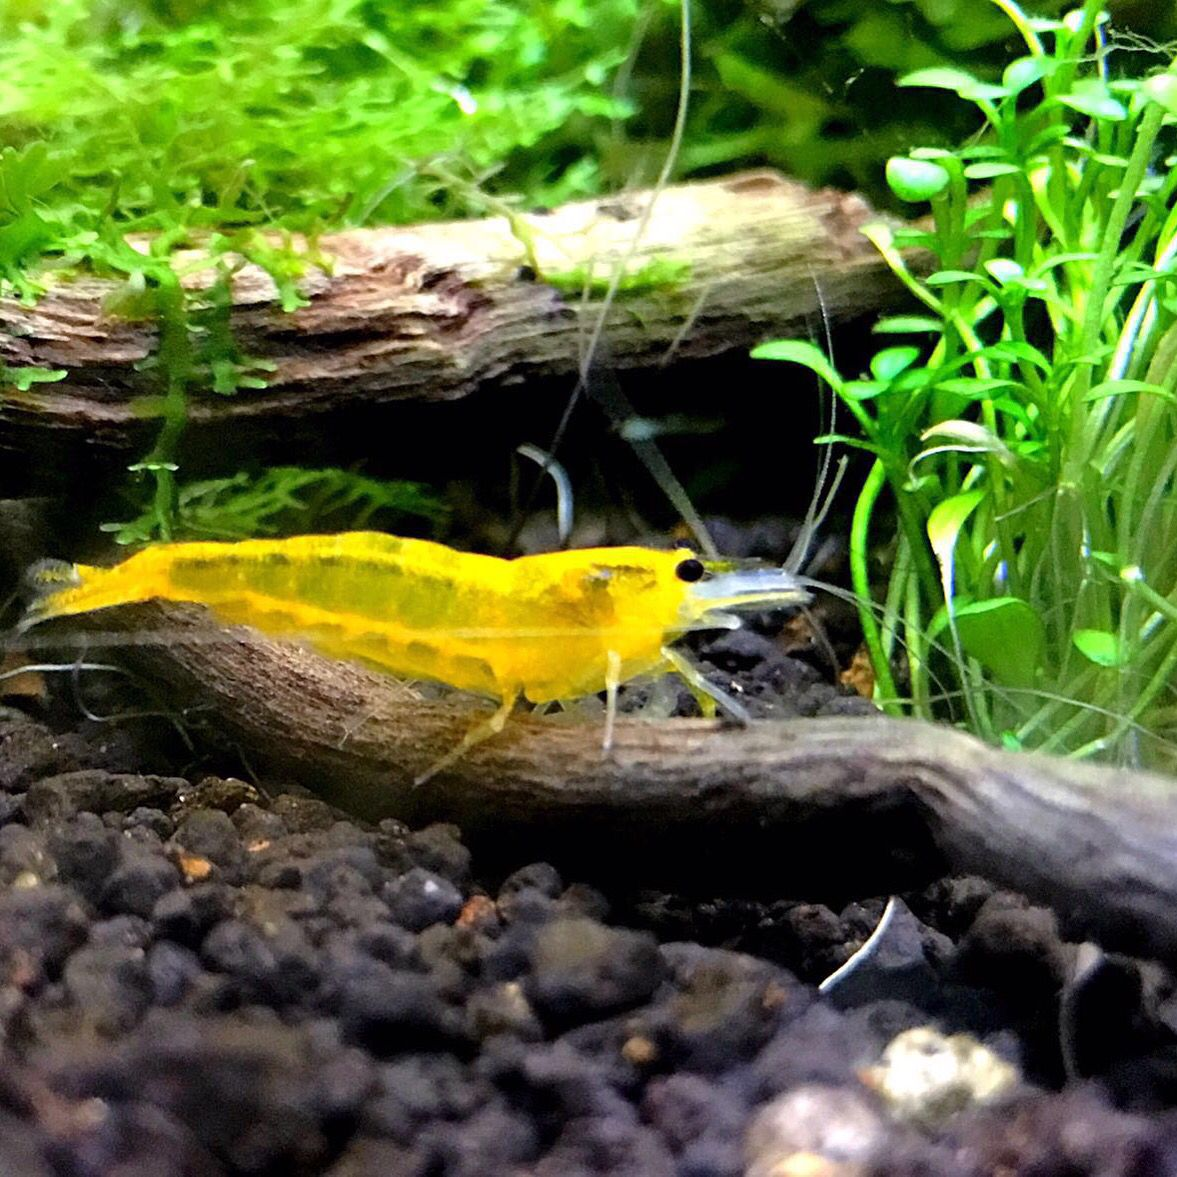 Freshwater fish tank yellow water - Yellow King Kong Shrimp Nano Aquariumfreshwater